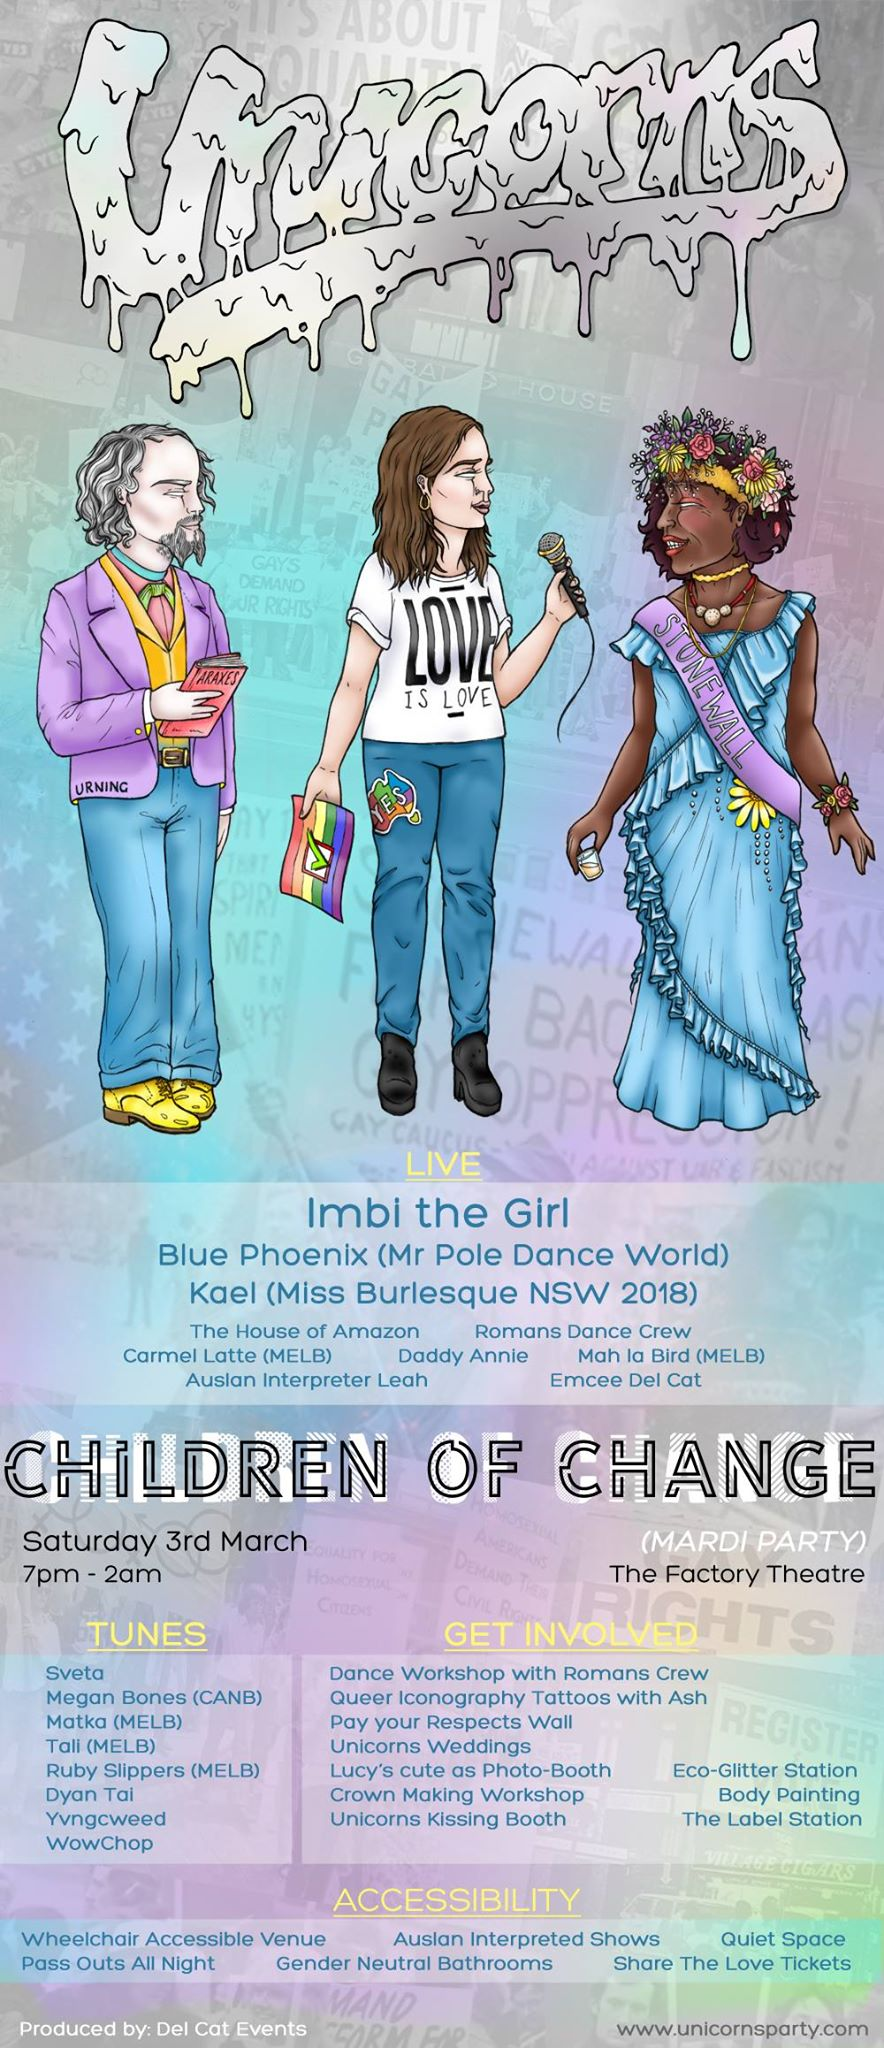 Unicorns - Mardi Party! - Children of ChangeSaturday 2nd March7pm - 2amThe Factory TheatreSOLD OUT